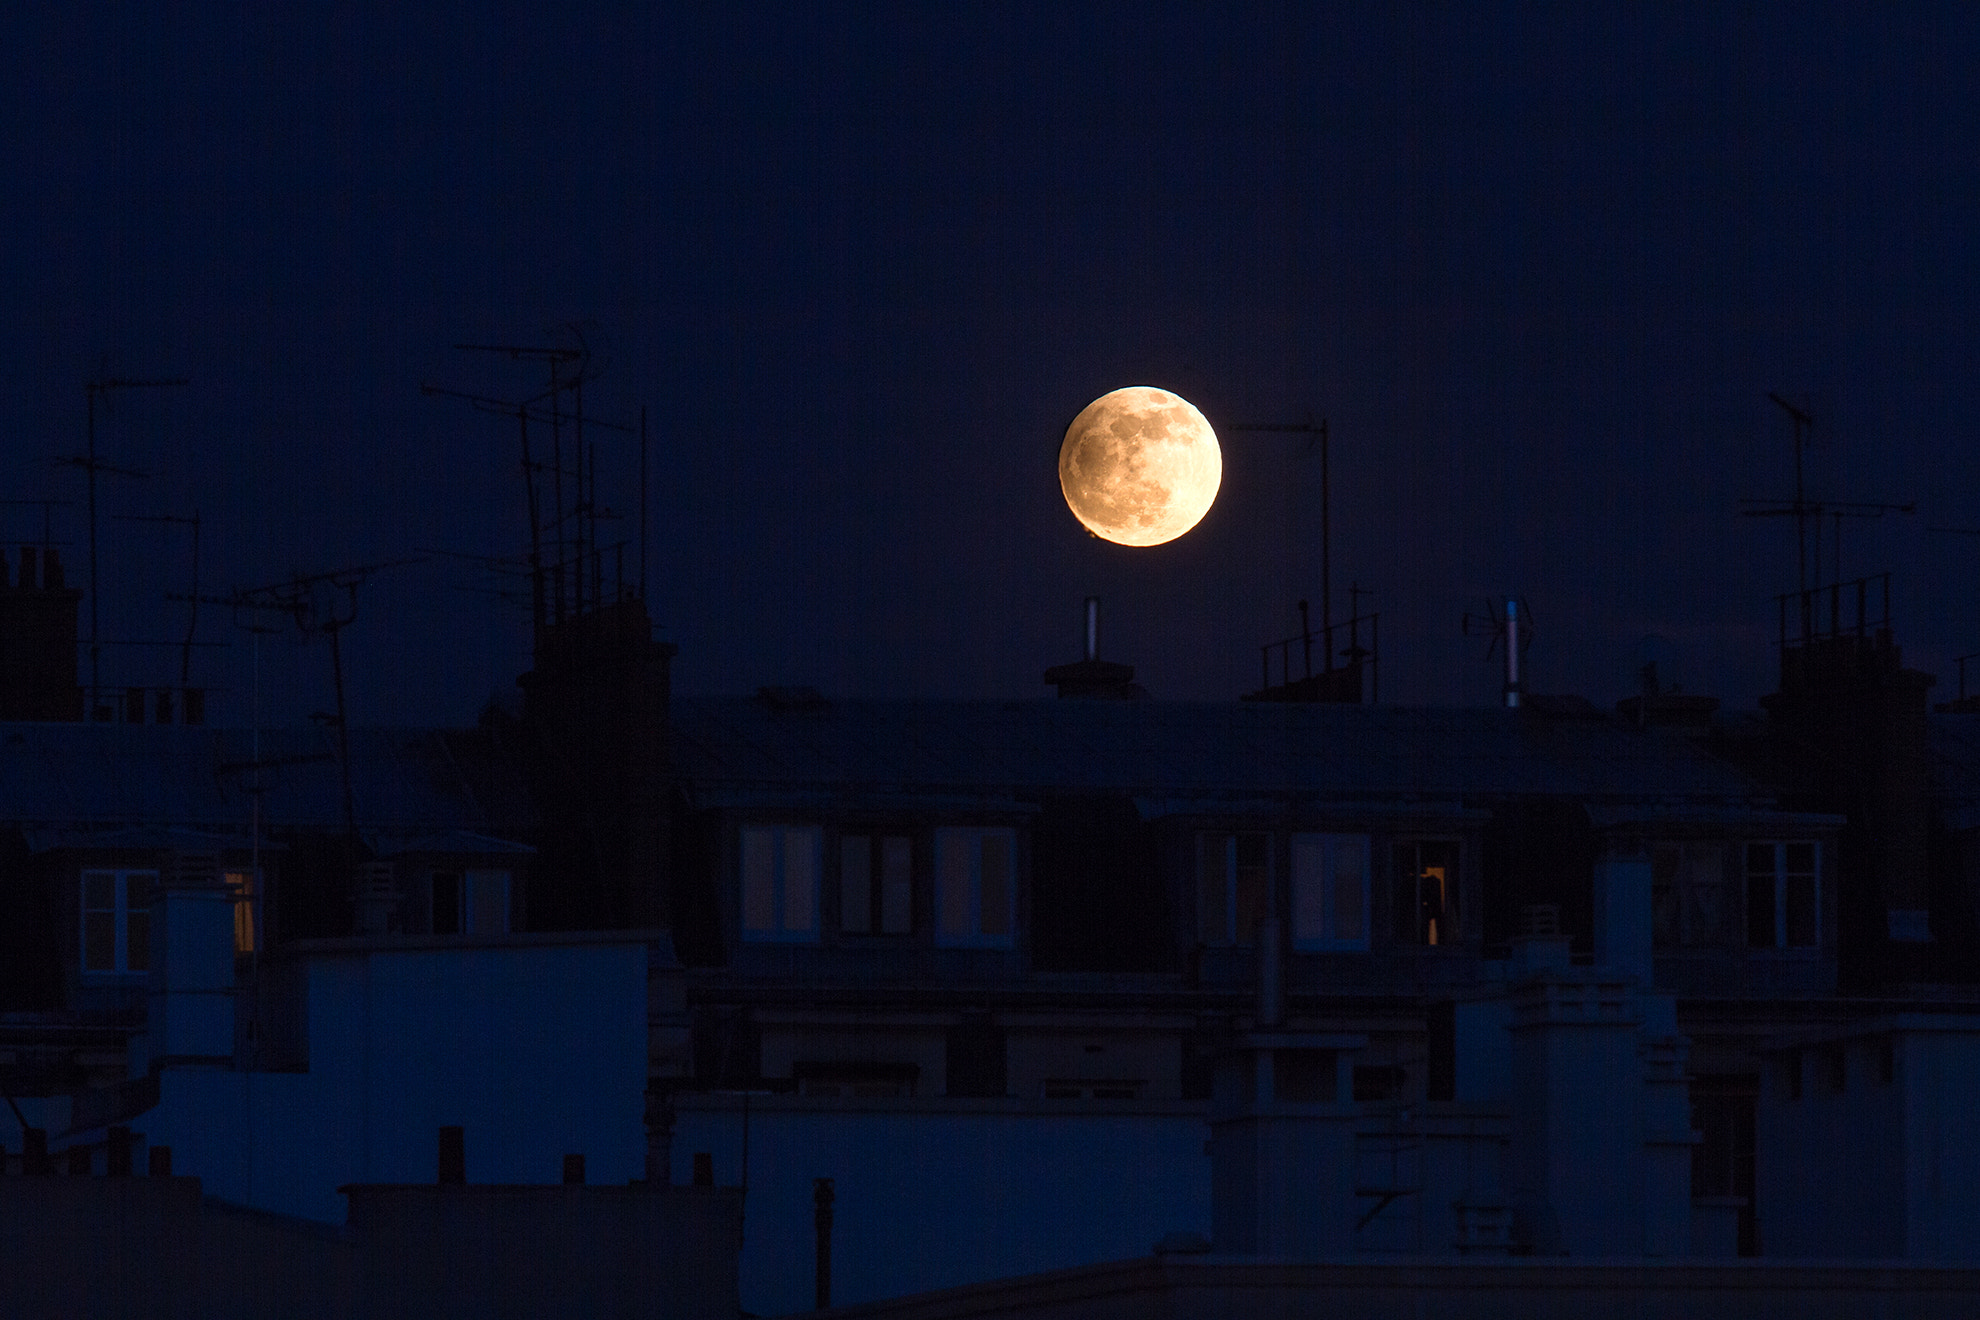 Photograph Partial lunar eclipse of full Moon over the Paris' roofs by Gilles Monney on 500px